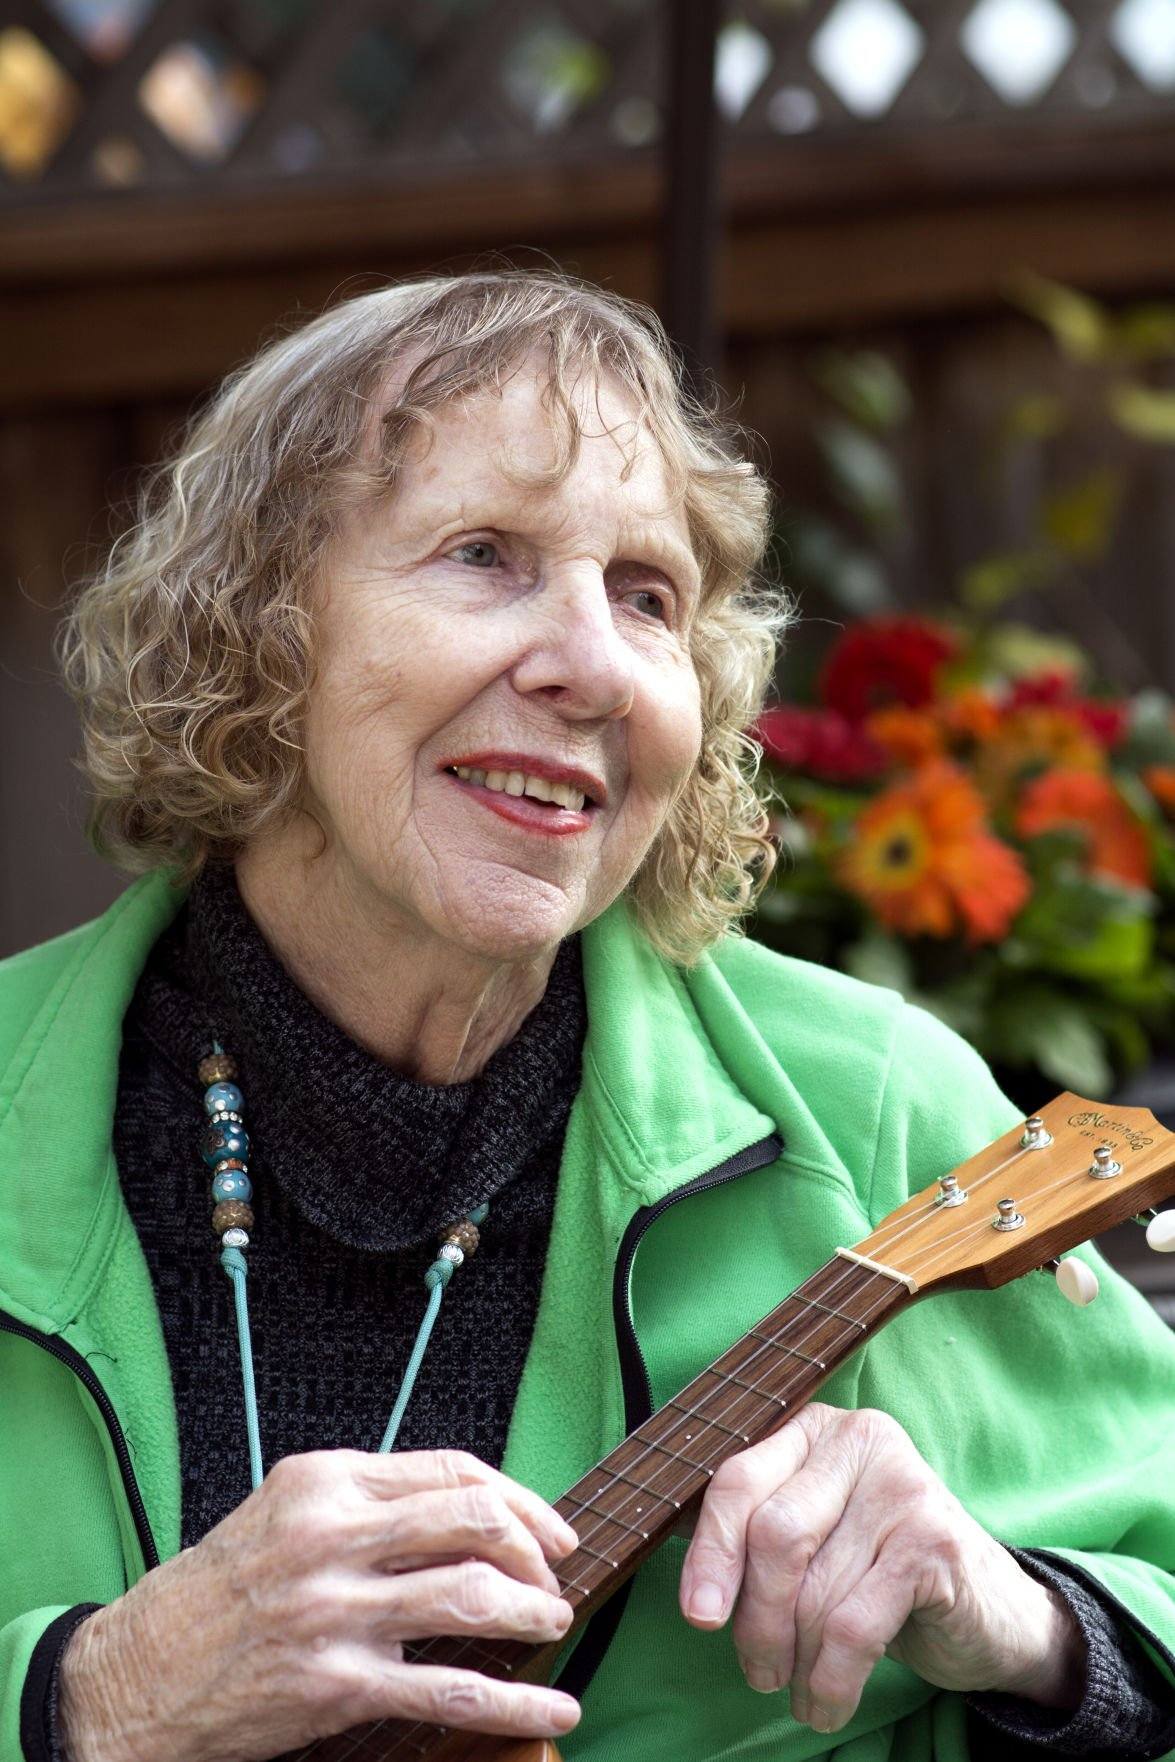 Striking a Chord: A Life with Multiple Sclerosis